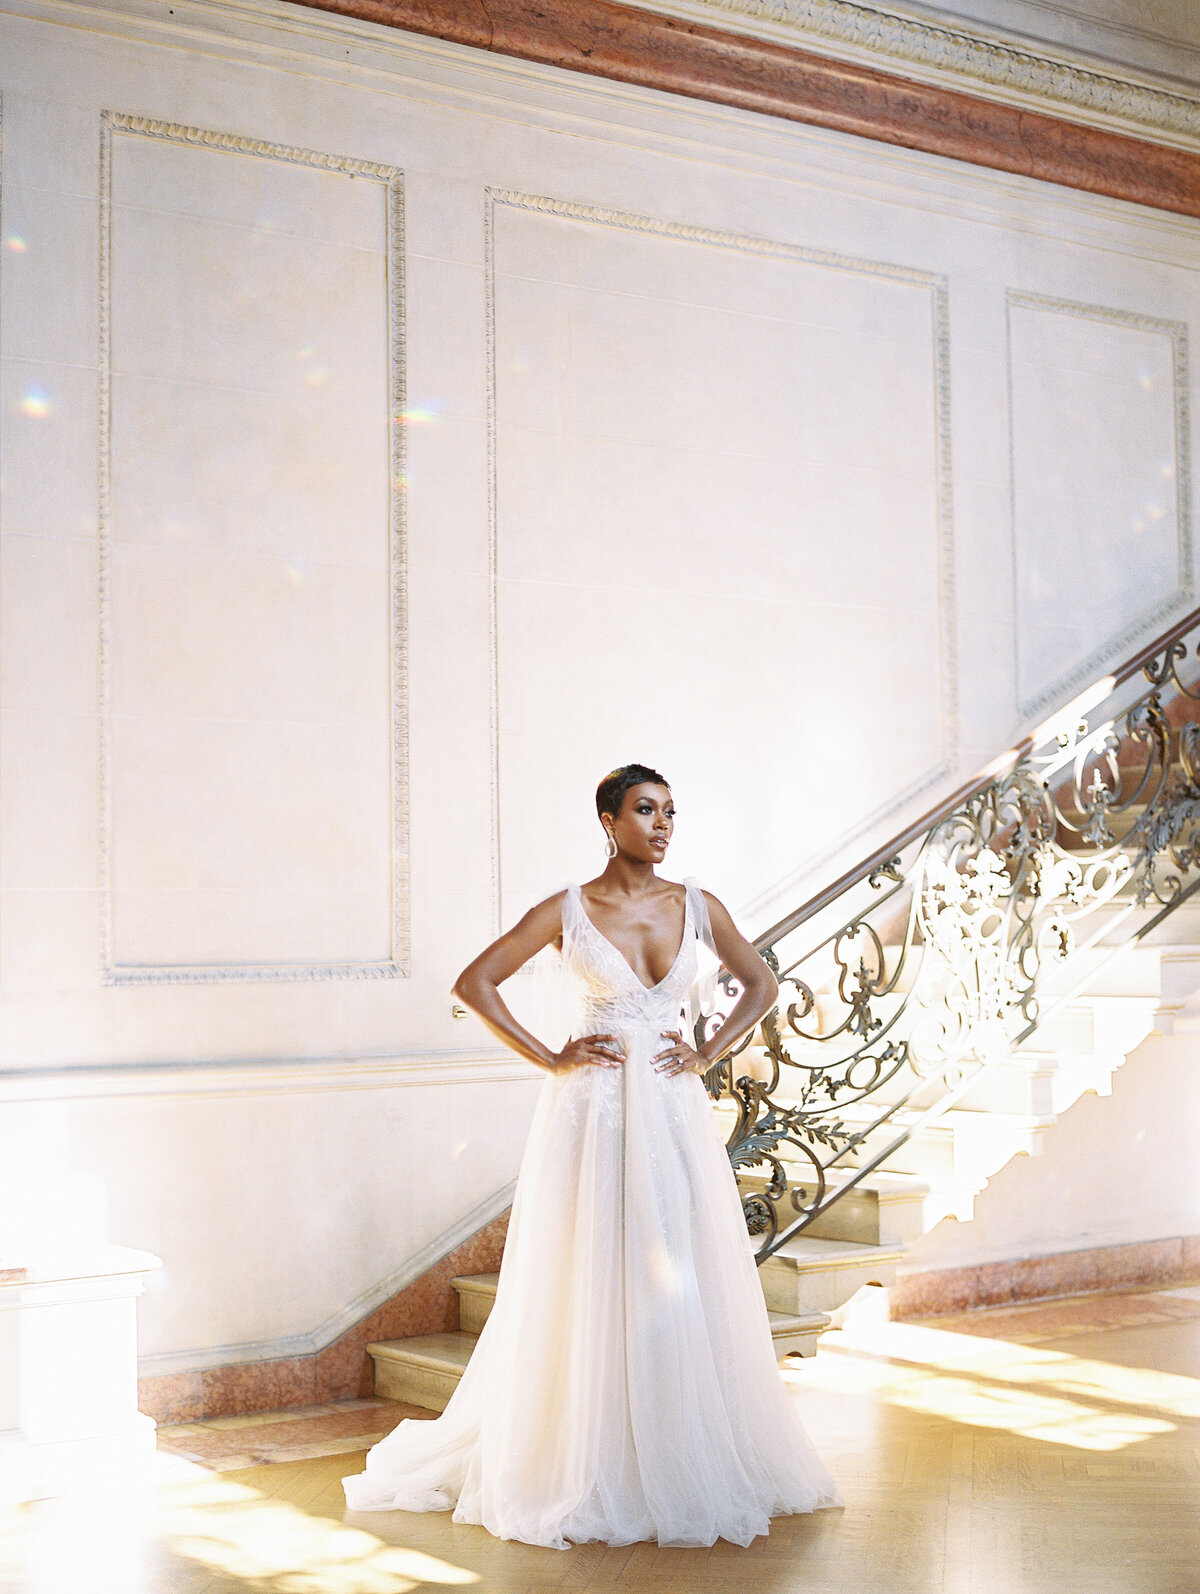 Modern Bride at The Anderson House DC Wedding Venue wearing a Berta Wedding Gown